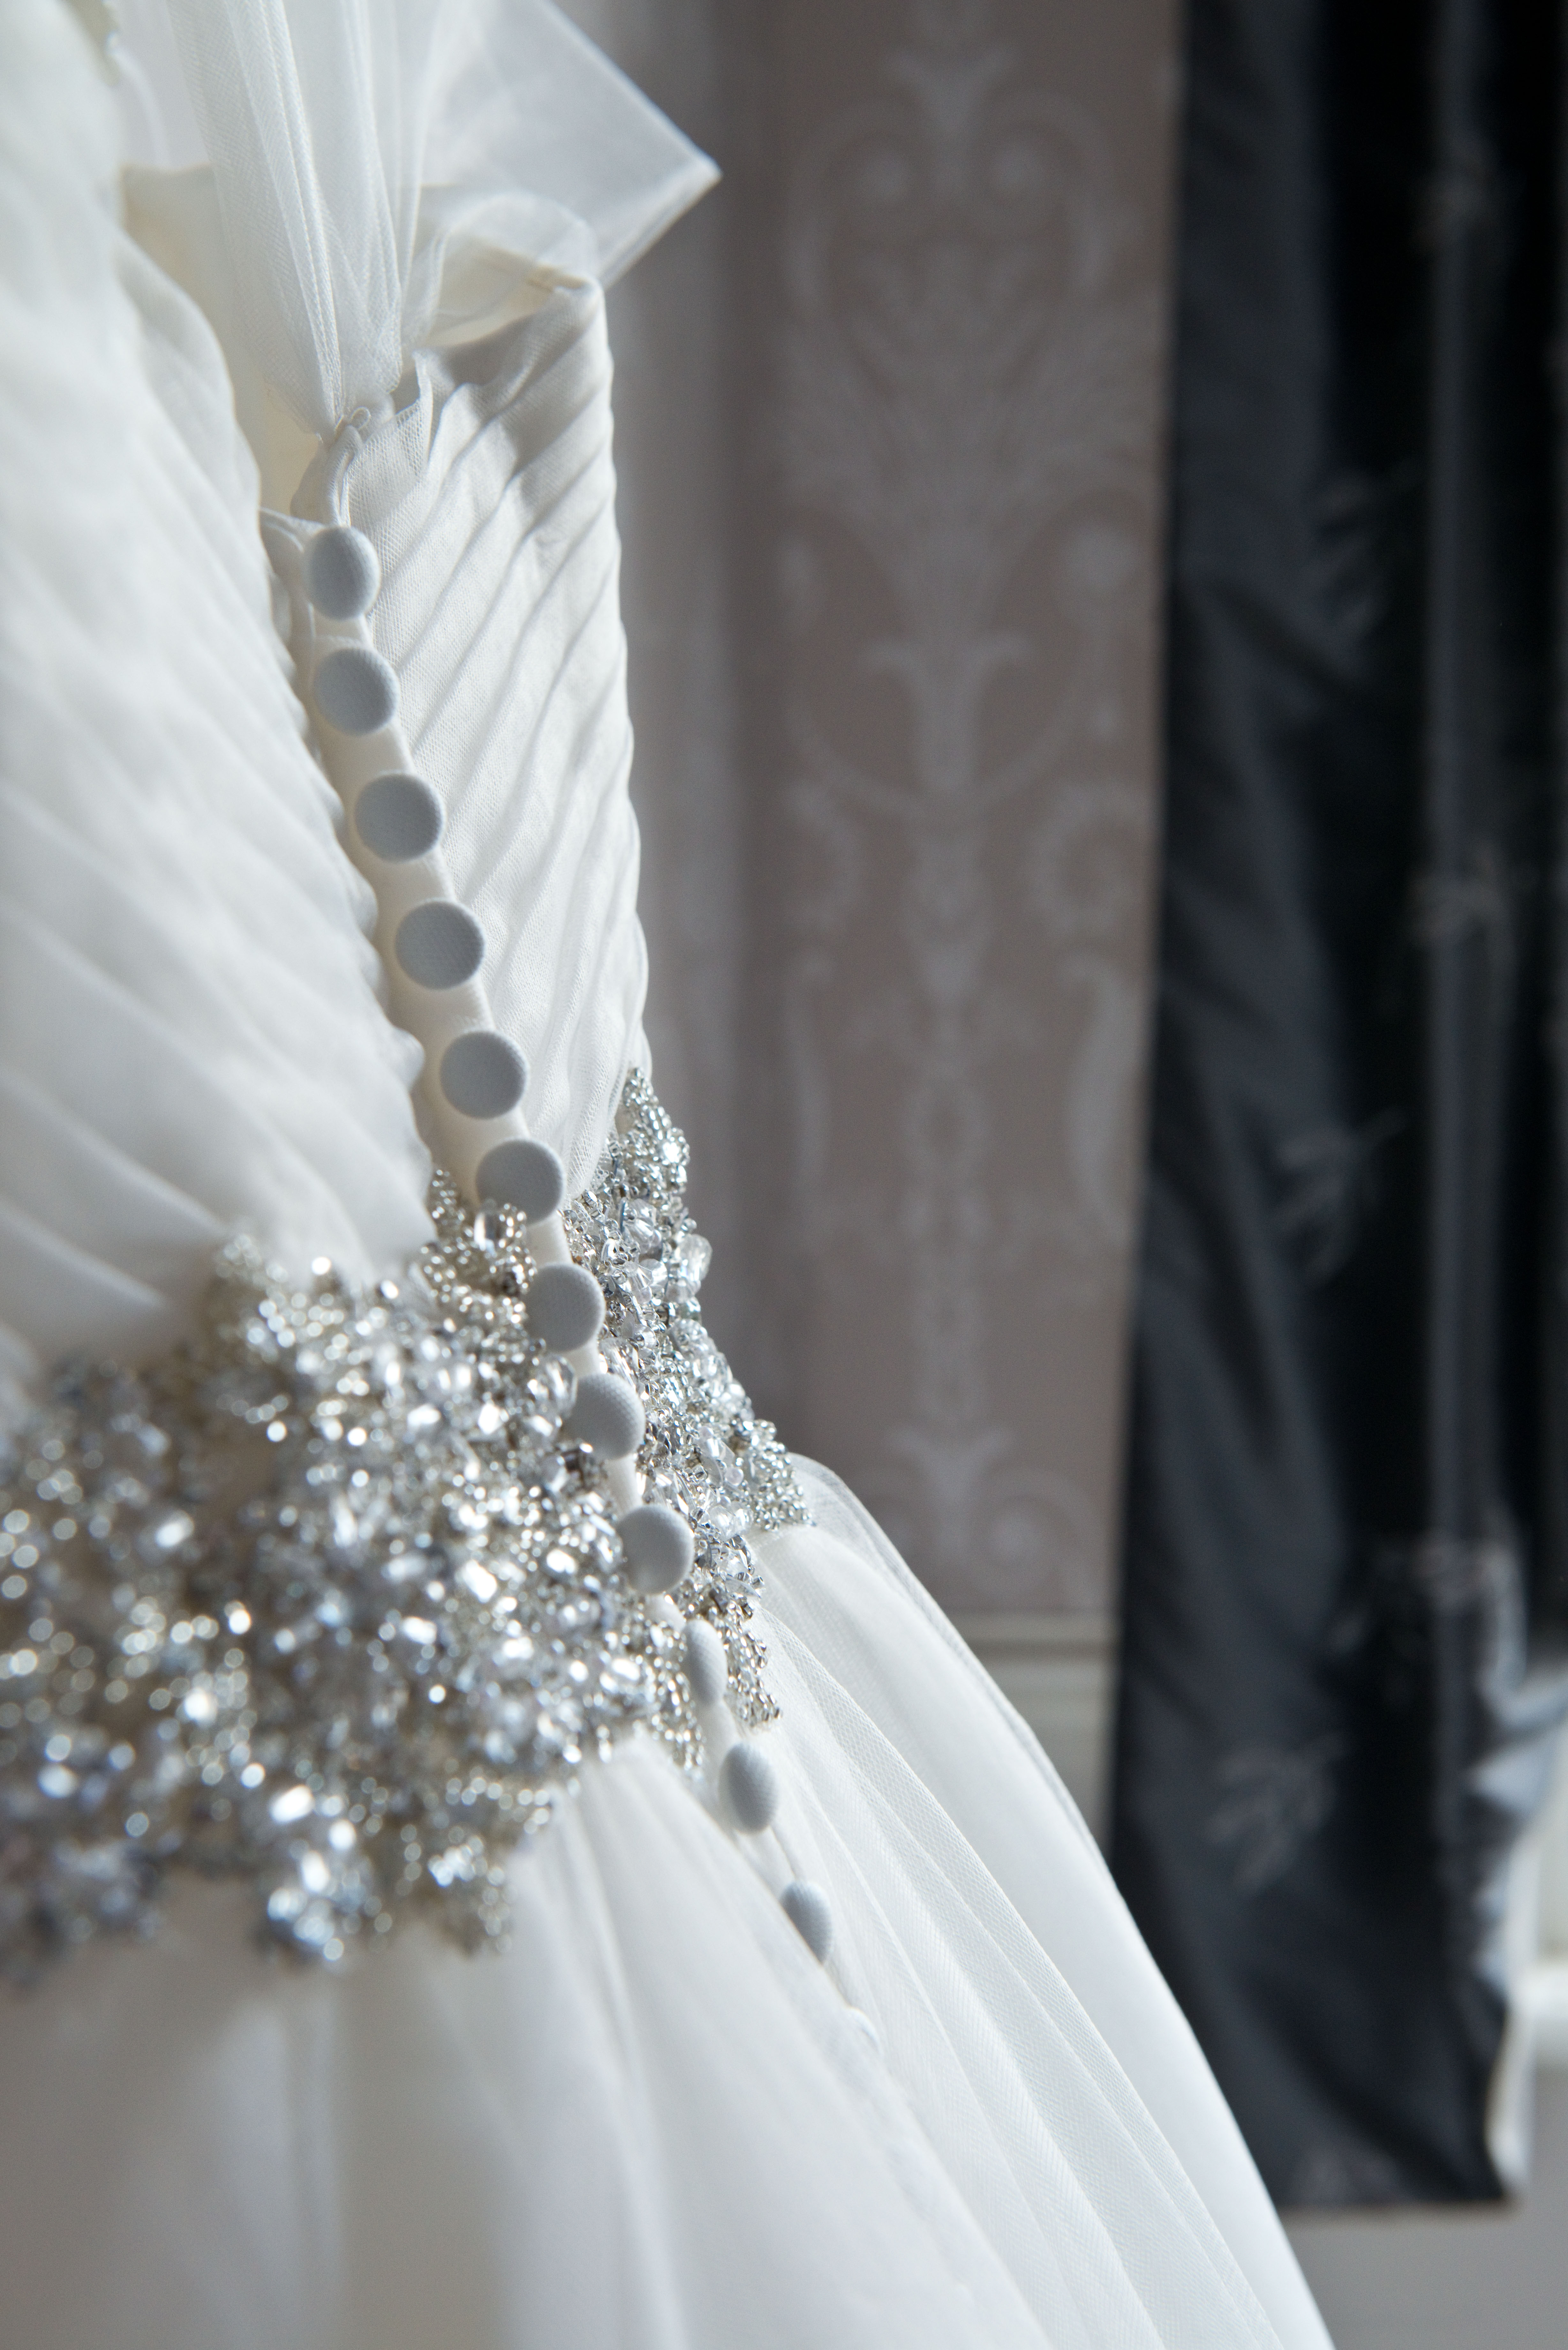 Wedding dress details in the sunlight from a window.